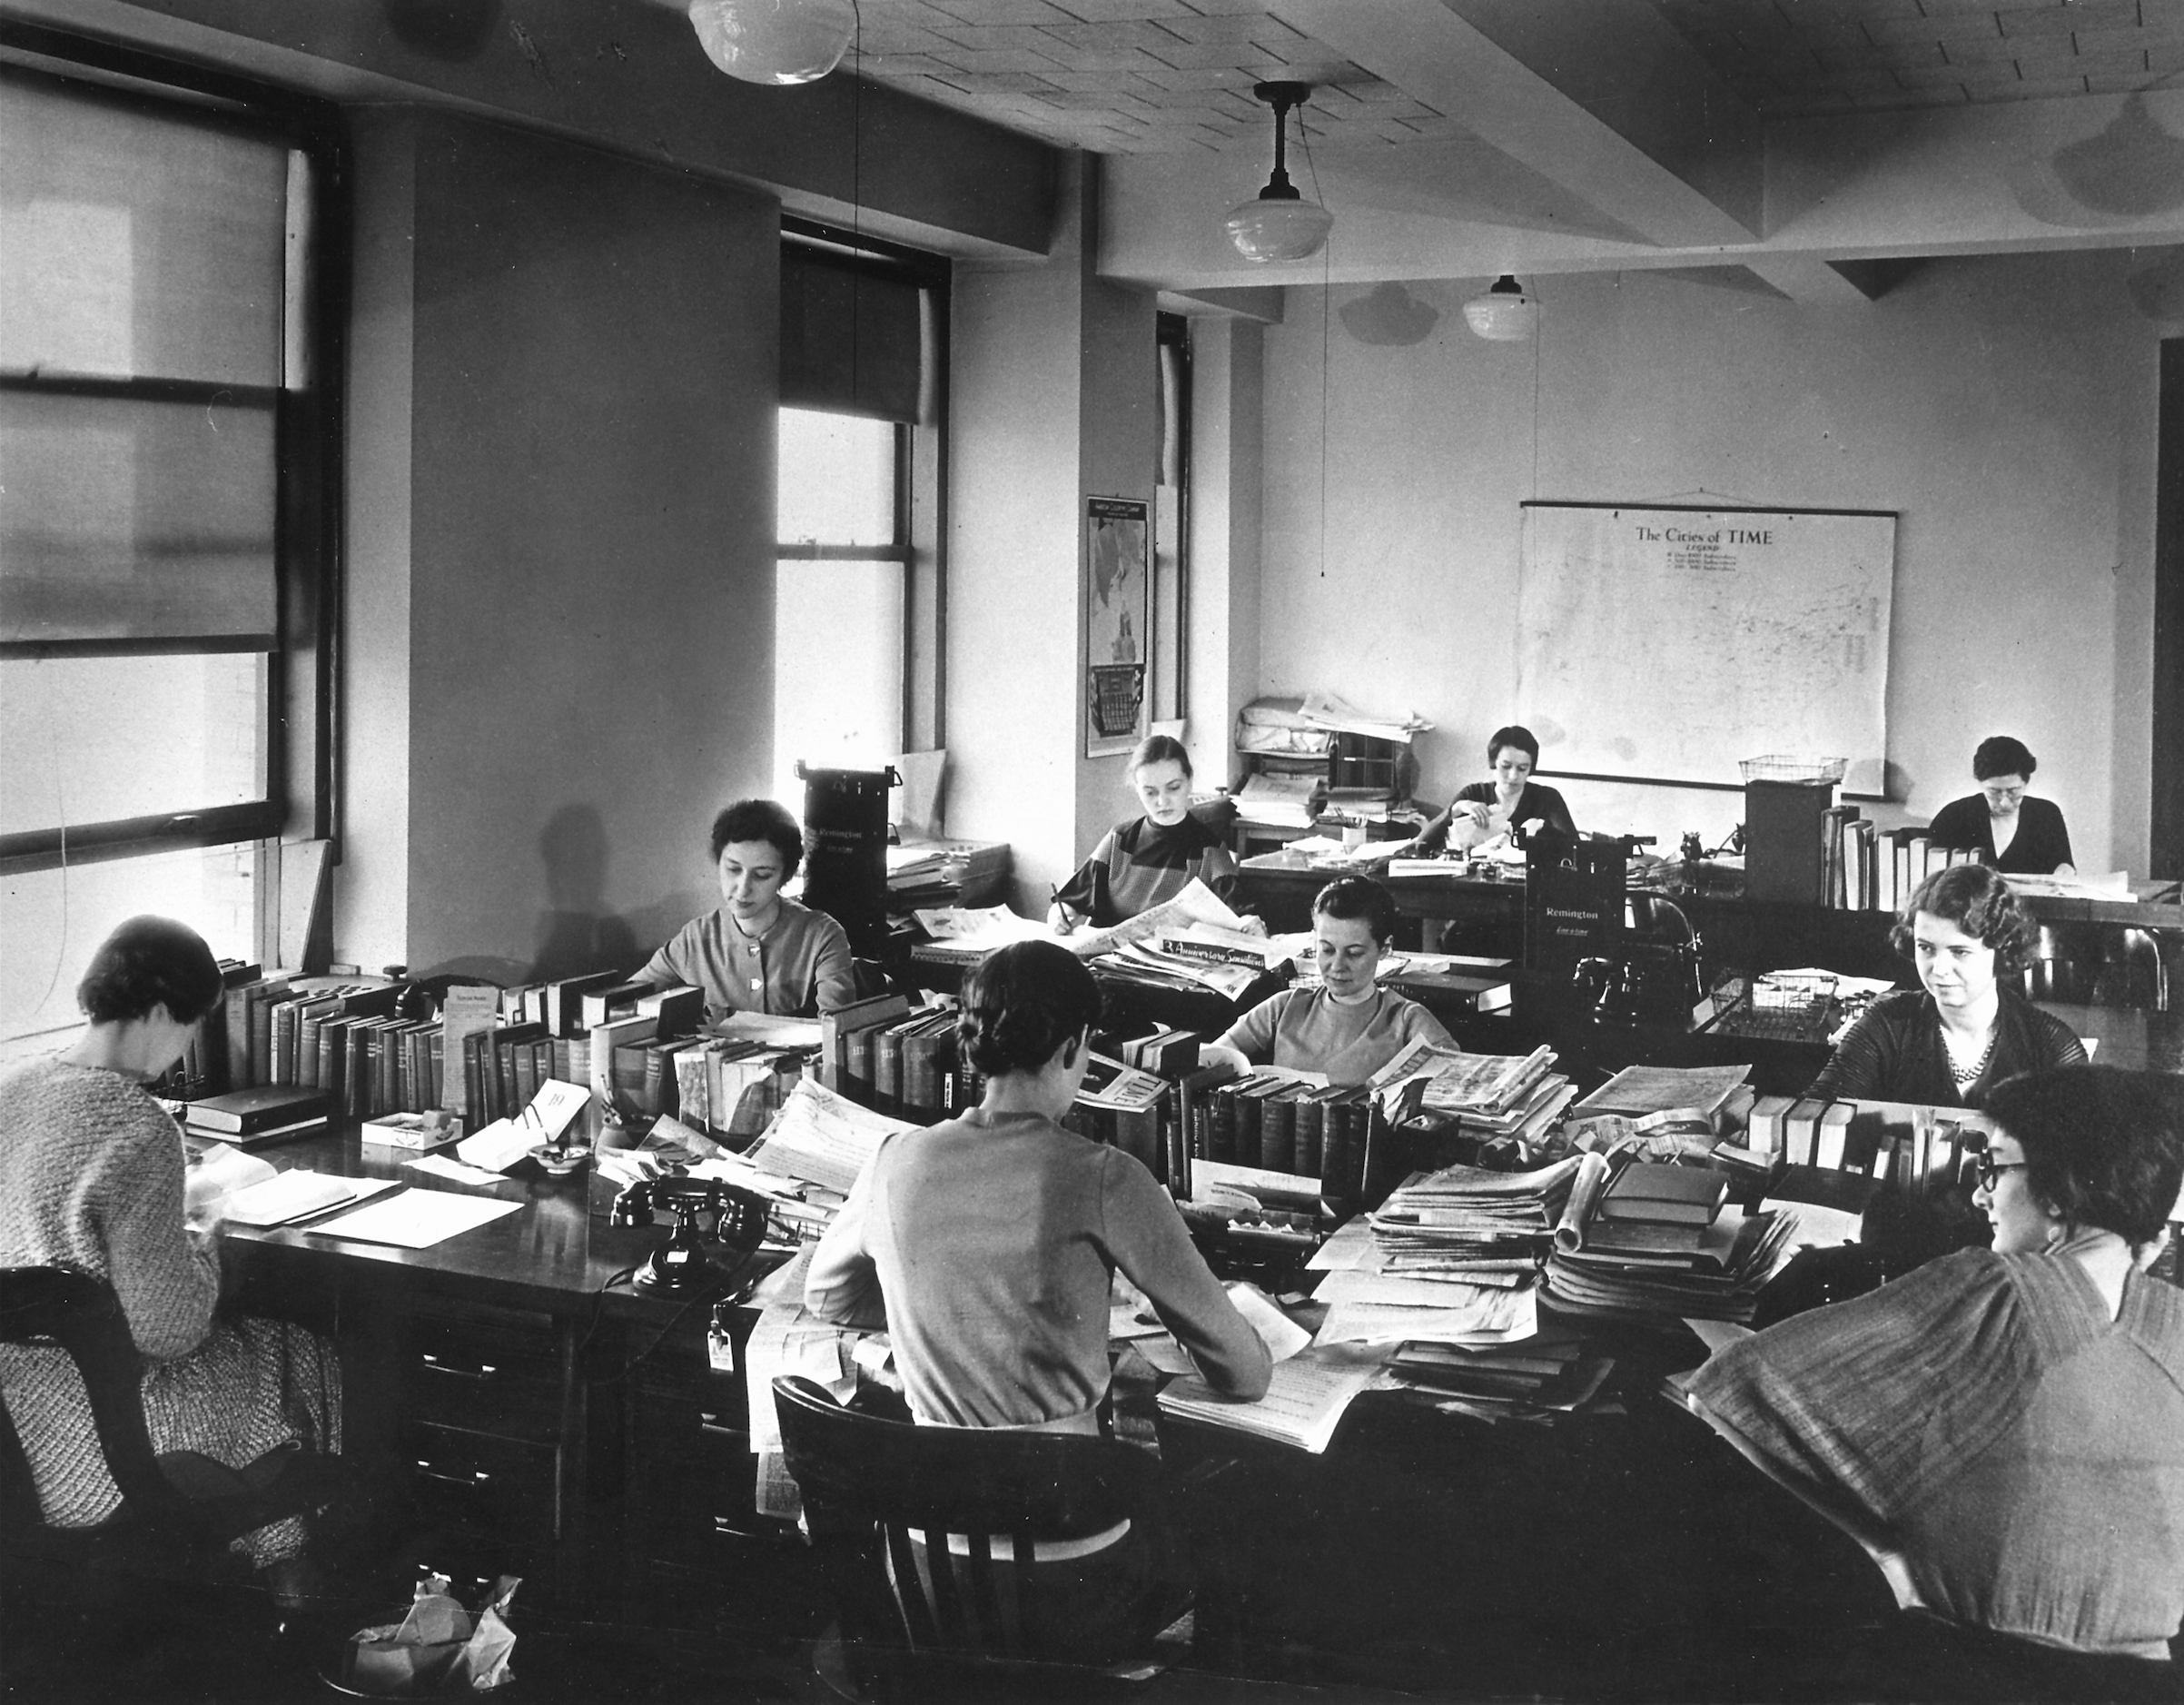 Female TIME magazine staffers at work in 1933